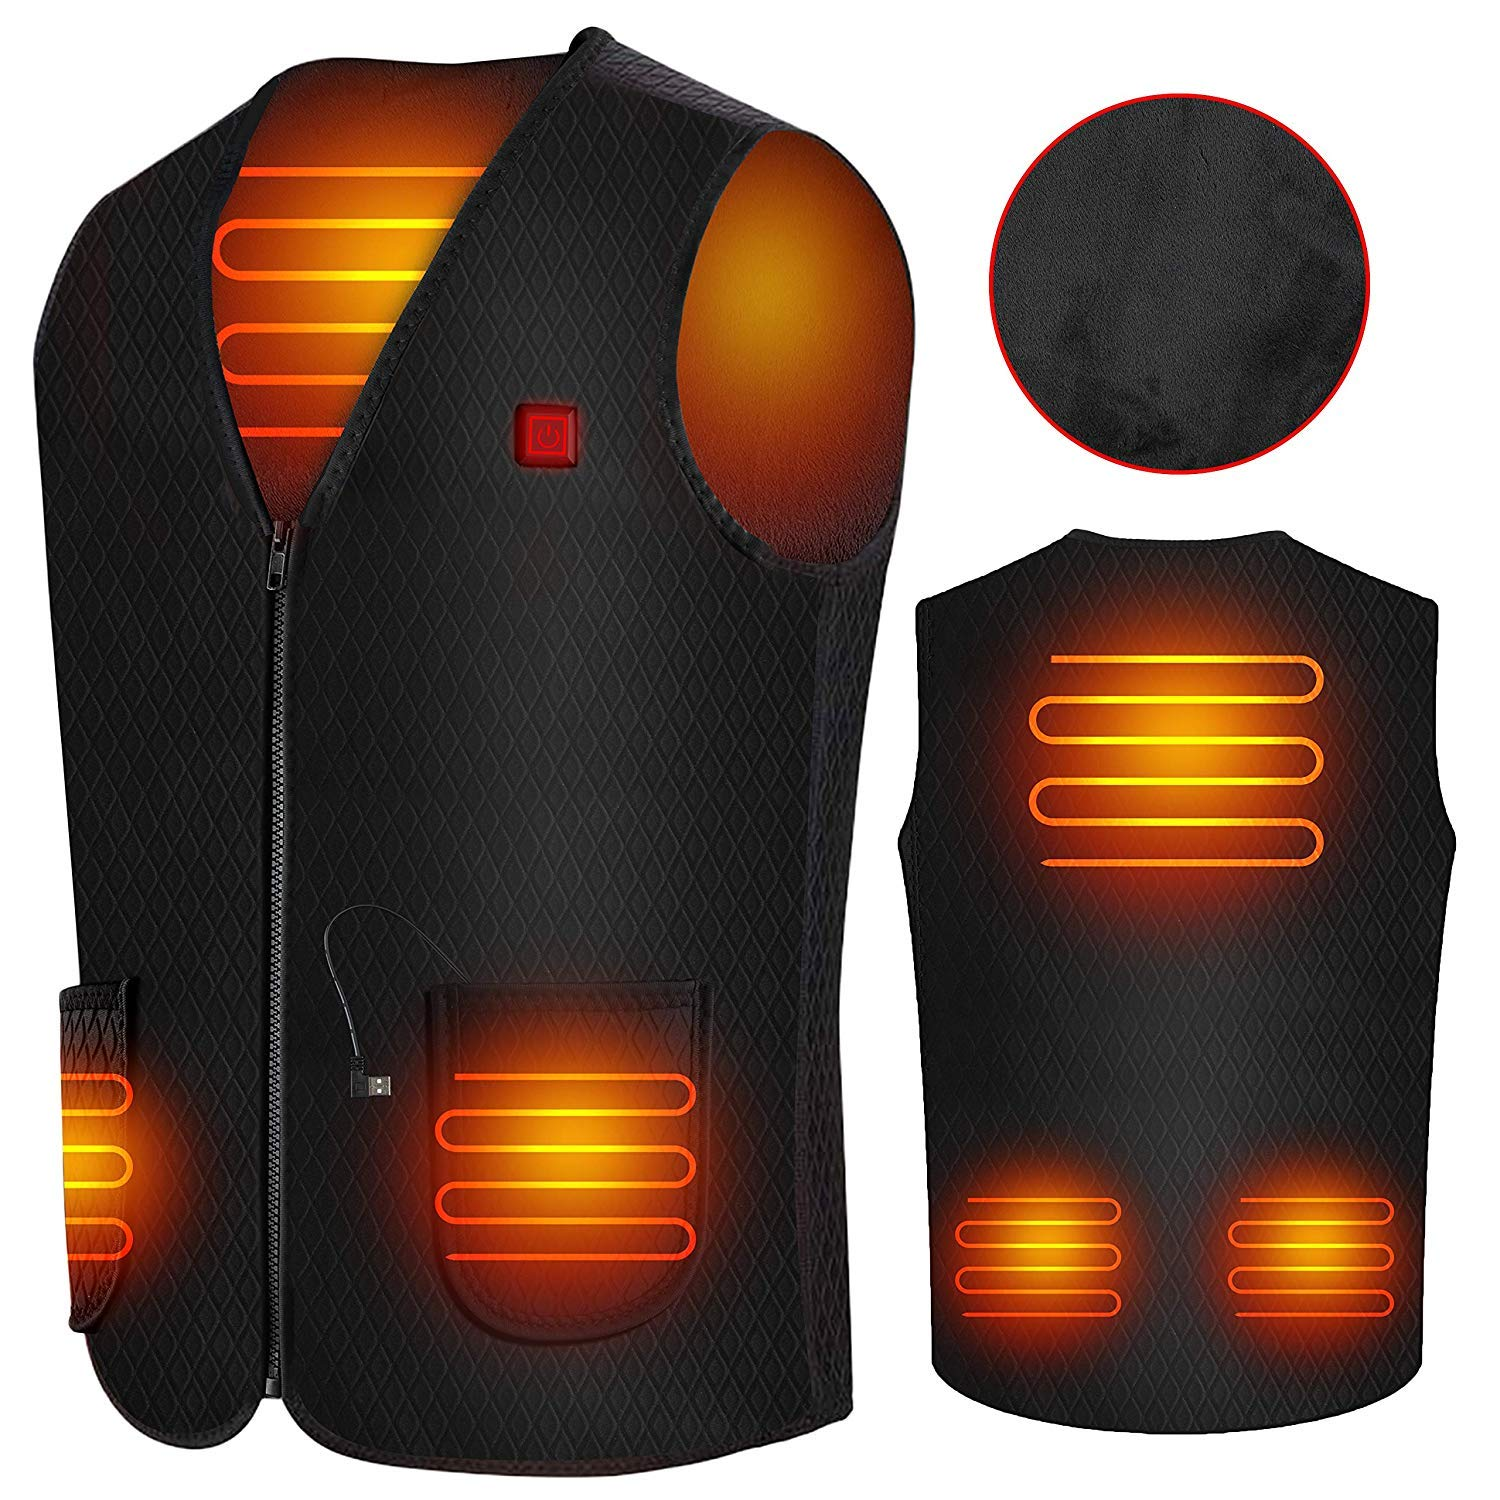 Doifck Heated Vest, USB Charging Lightweight Body Warmer Vest, Washable Electric Thermal Waistcoat Heating Warm Jacket with USB Insert for Winter Skiing Hiking Motorcycle Travel Fishing